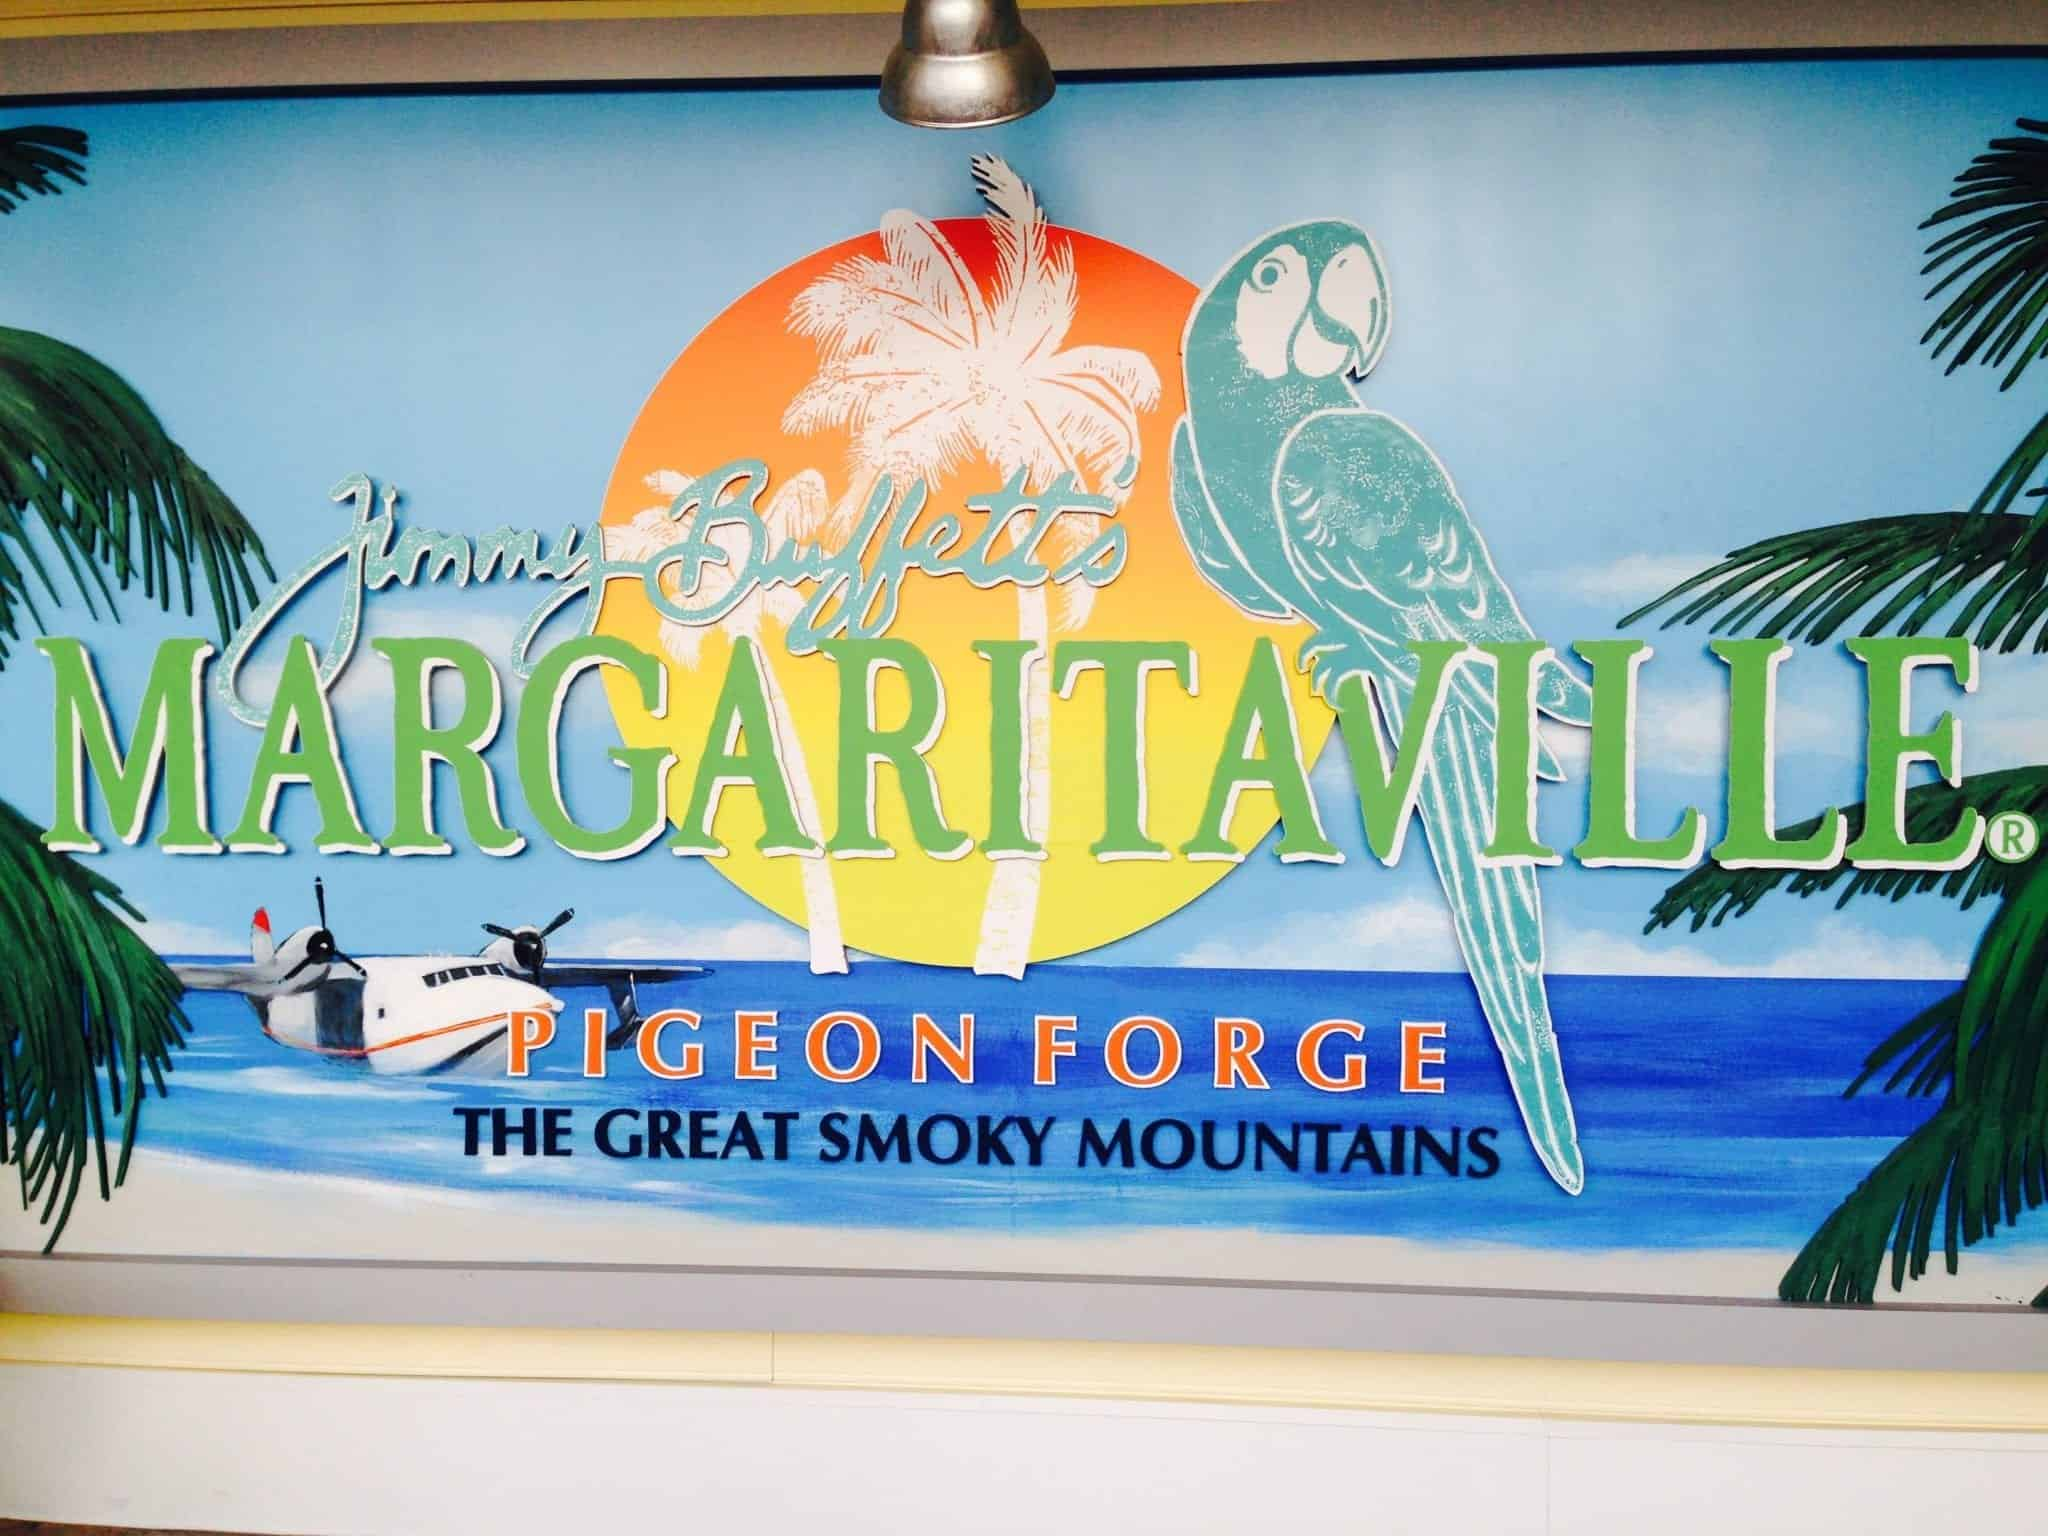 Margaritaville Pigeon Forge Opens Its Doors as Newest Restaurant in the Area